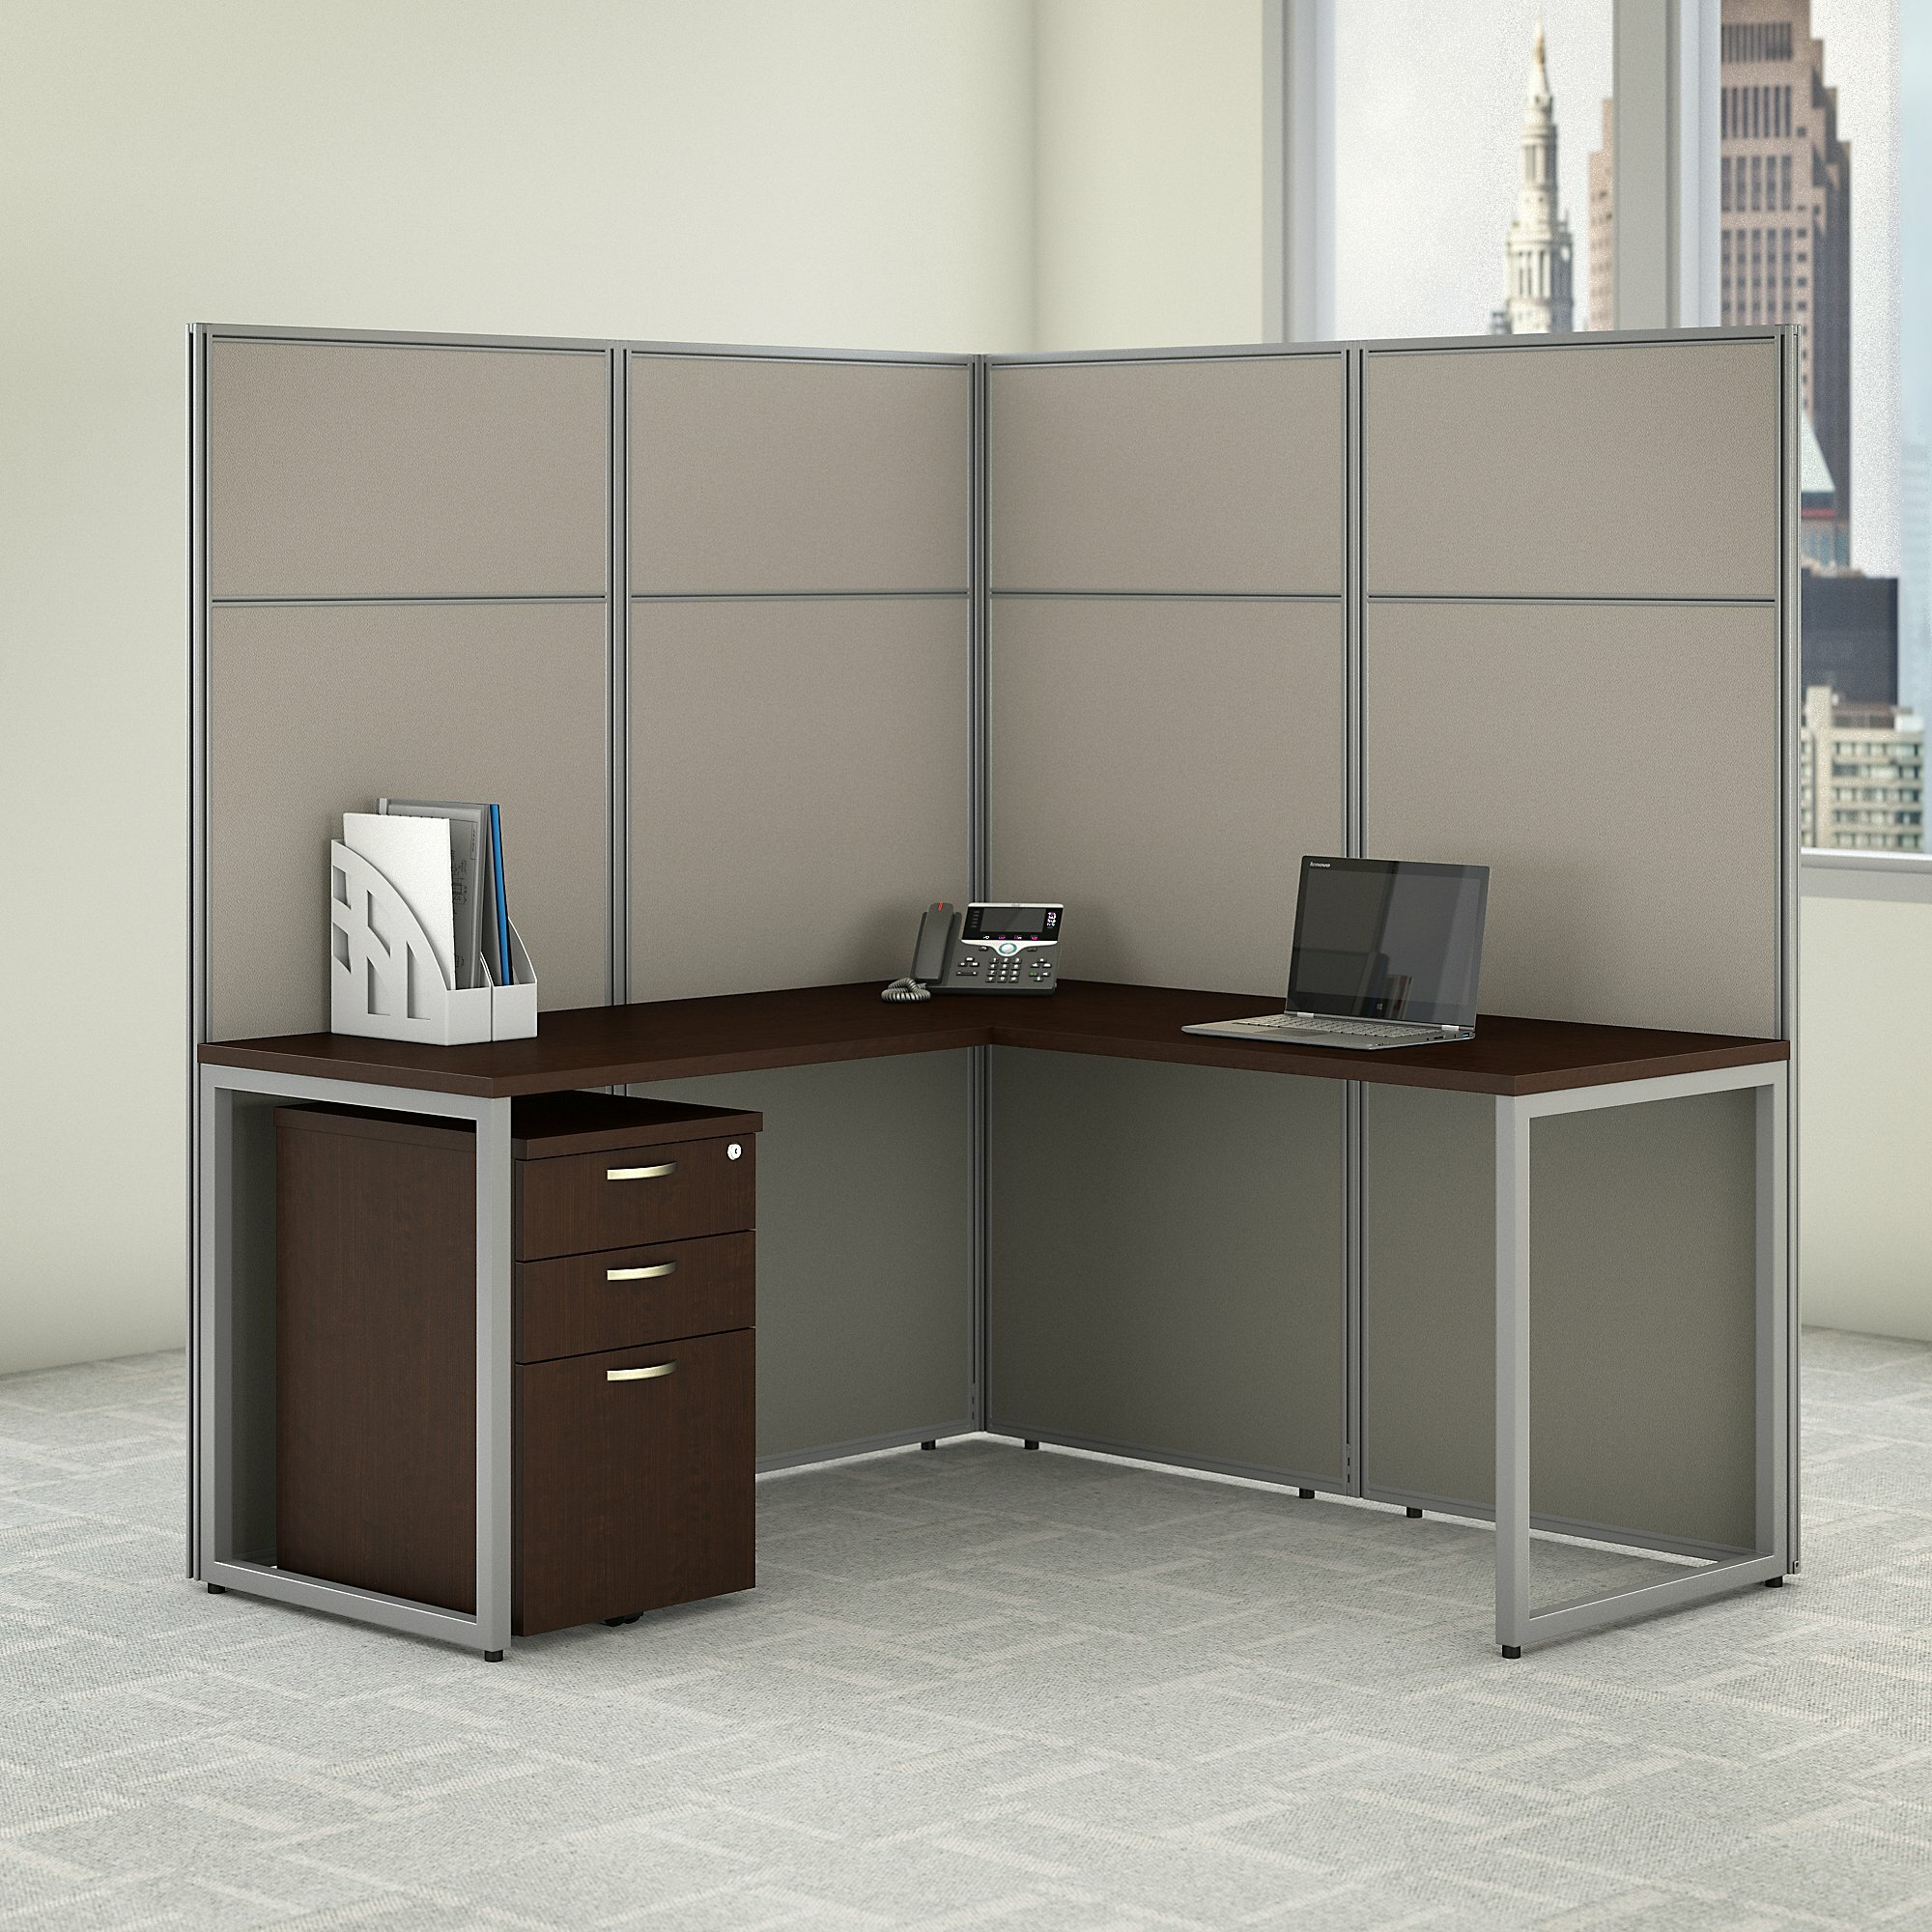 Easy Office L Shaped Desk Cubicle